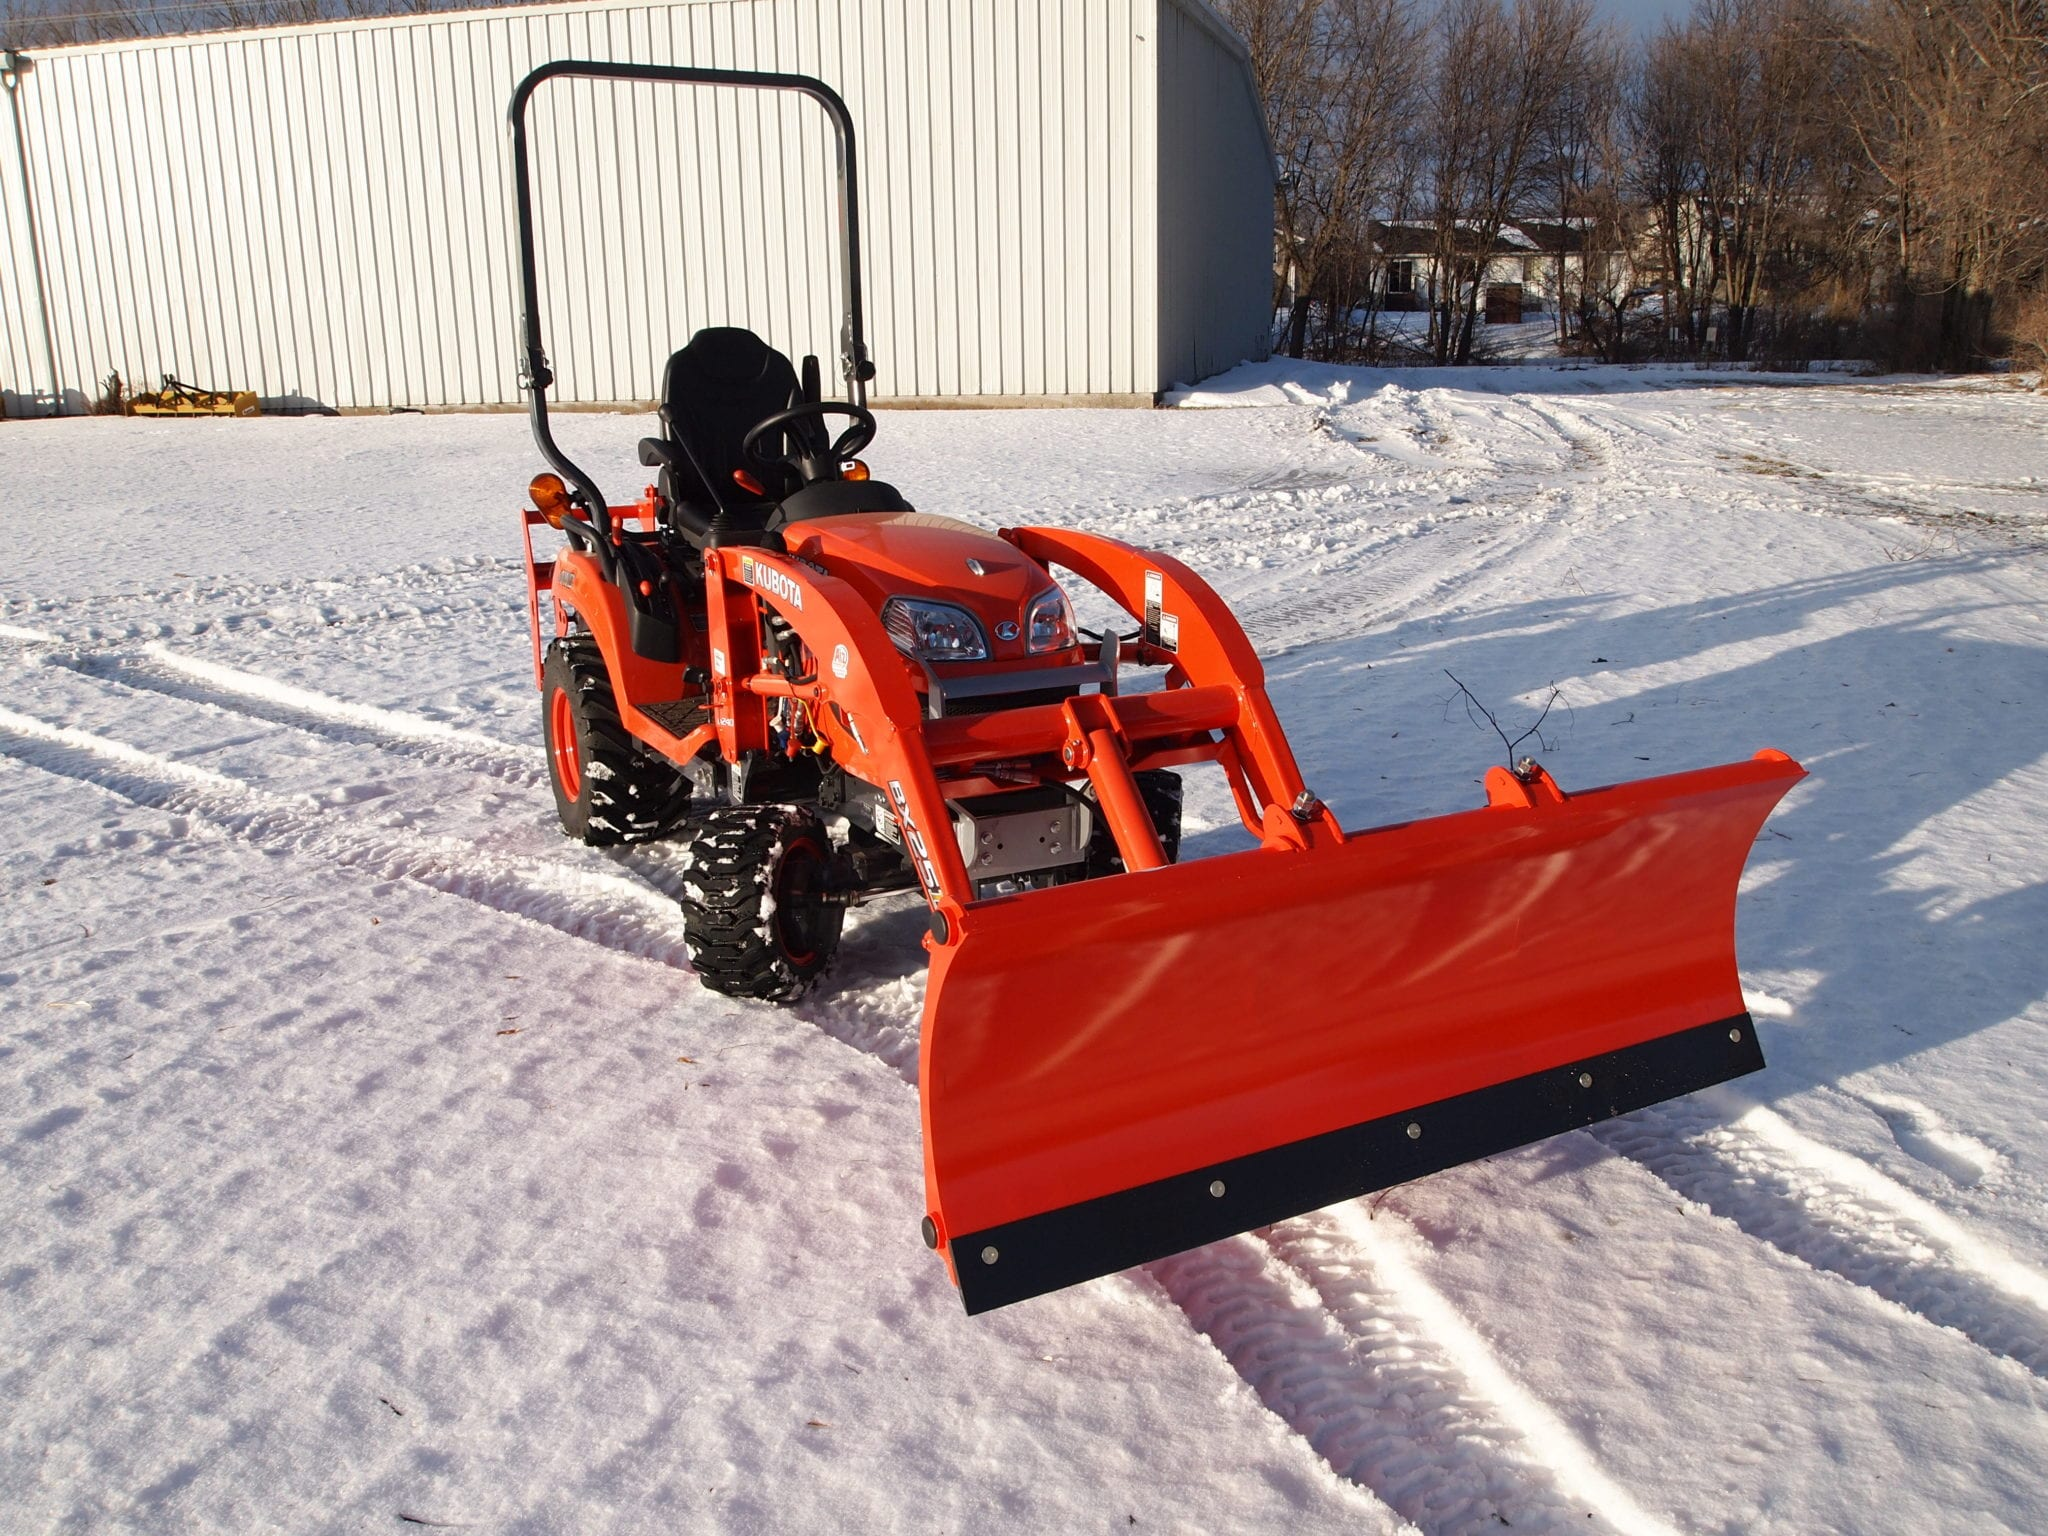 Tractor Loader Snow Plow Attachment : Kubota bx quick attach snow plow attachments